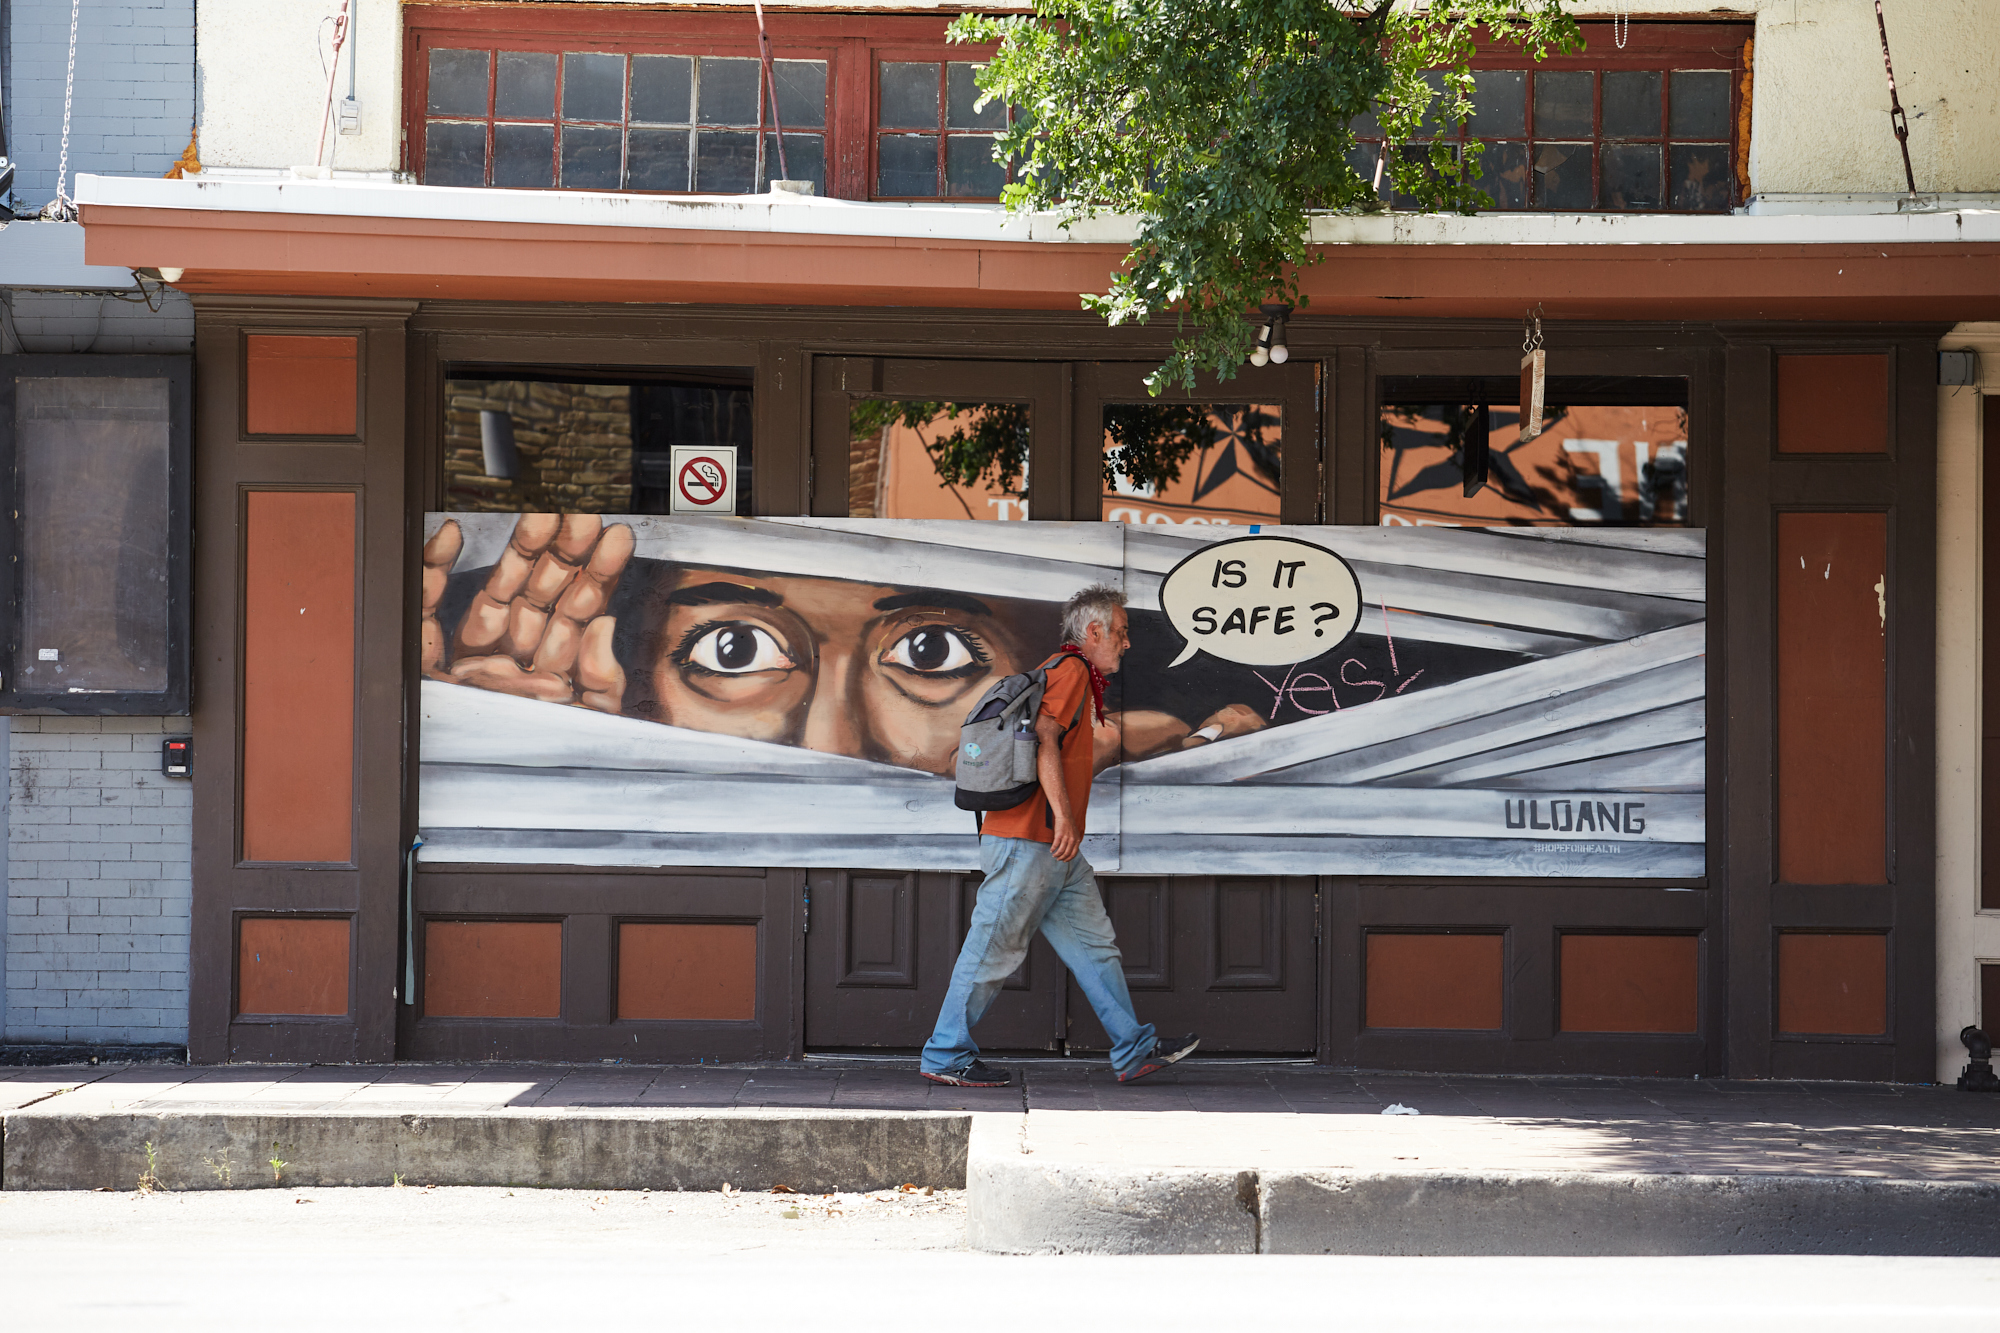 A man walking in front of a temporarily shuttered bar on East Sixth Street back in early May 2020